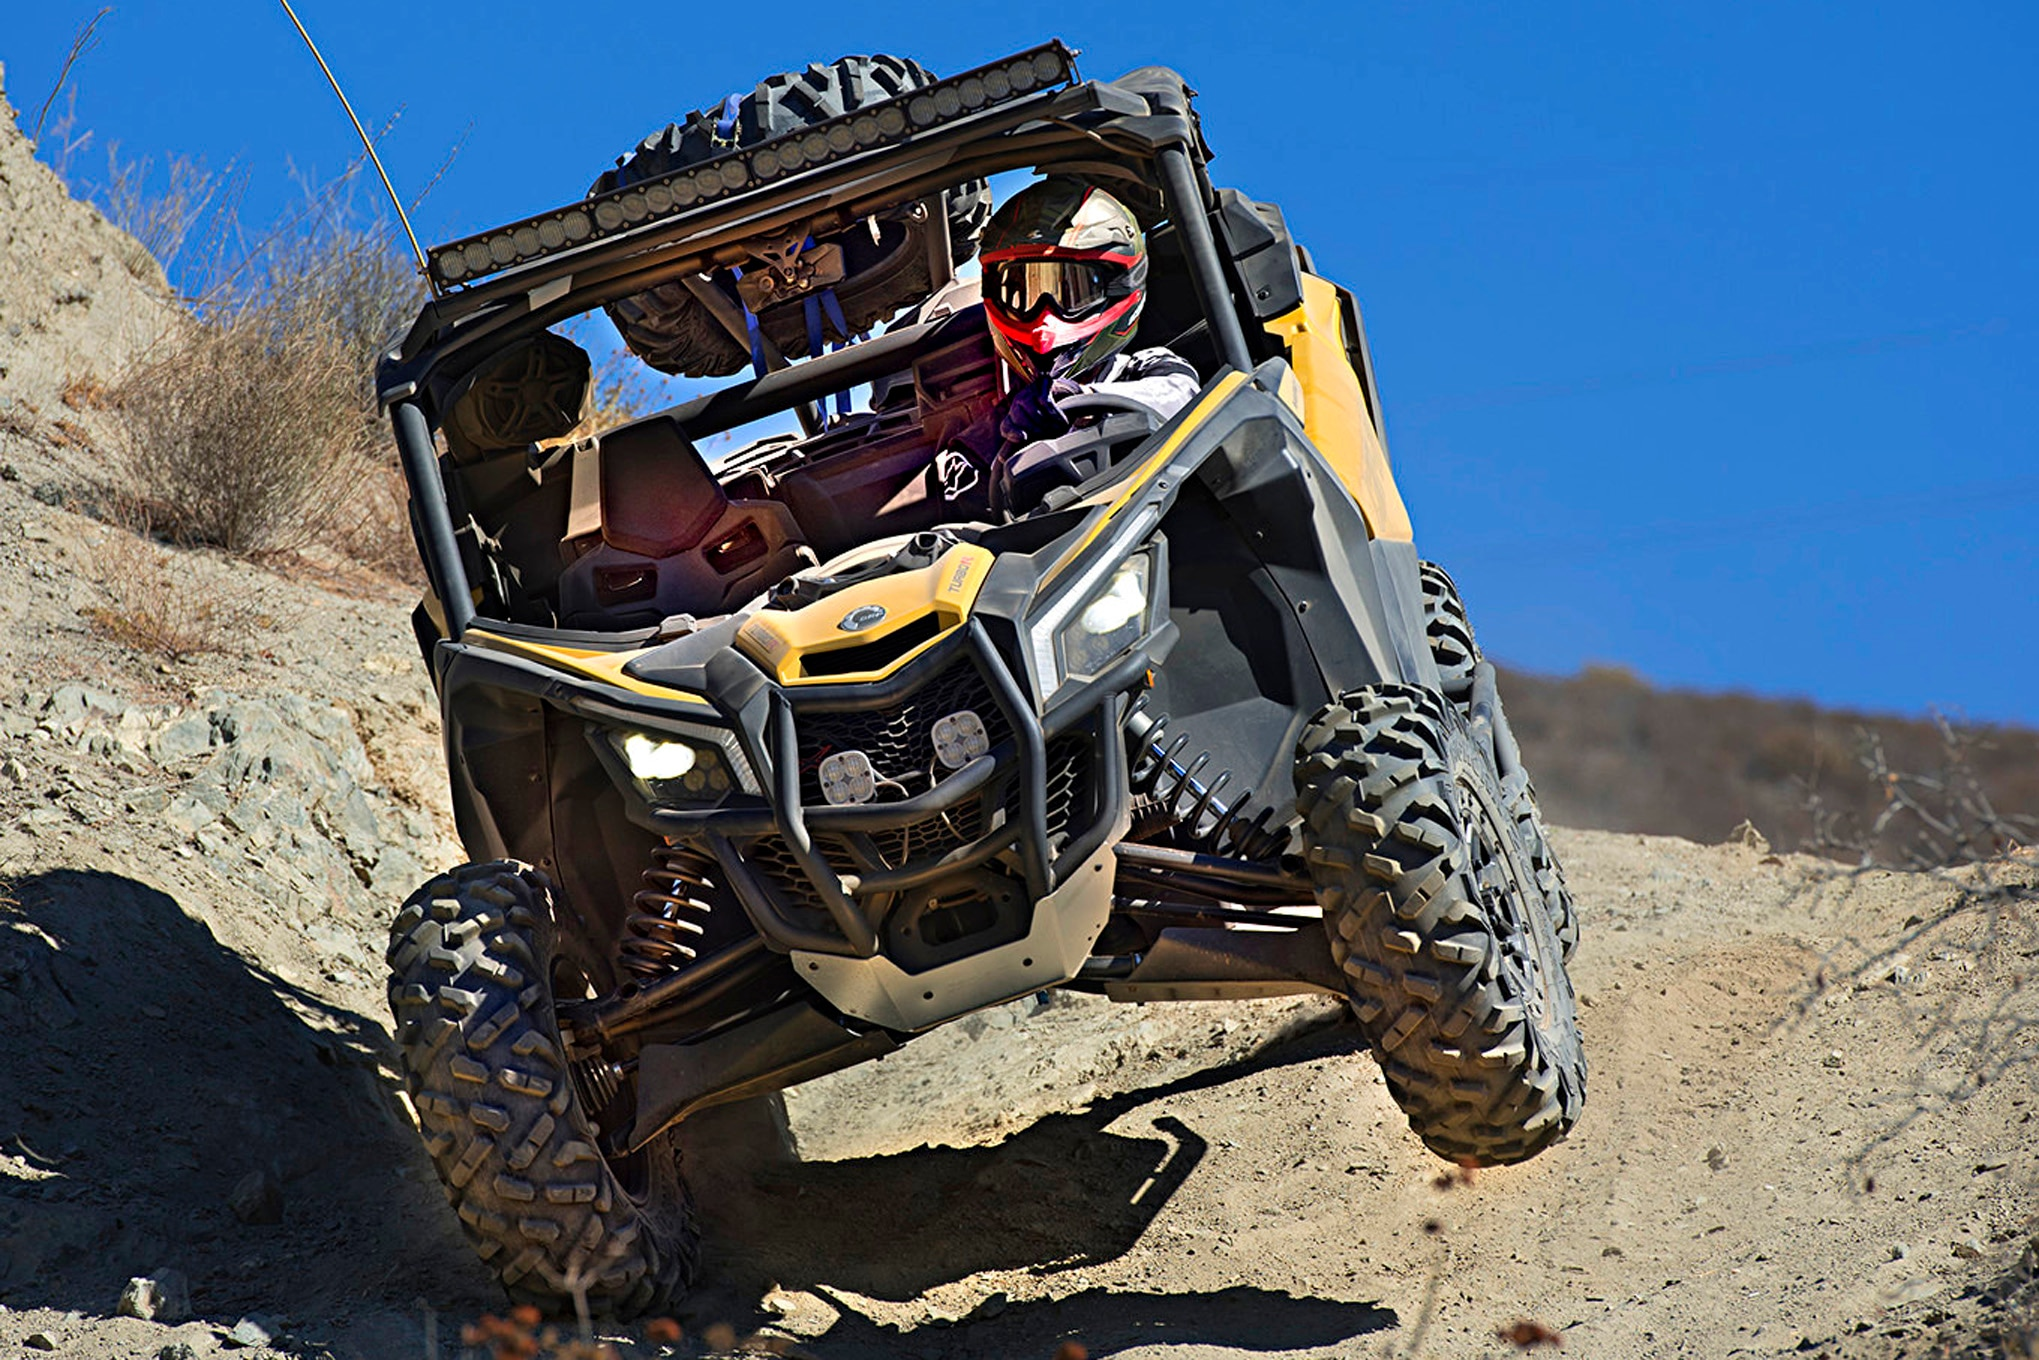 2017 Can-Am Maverick X3 Turbo R Test Ride